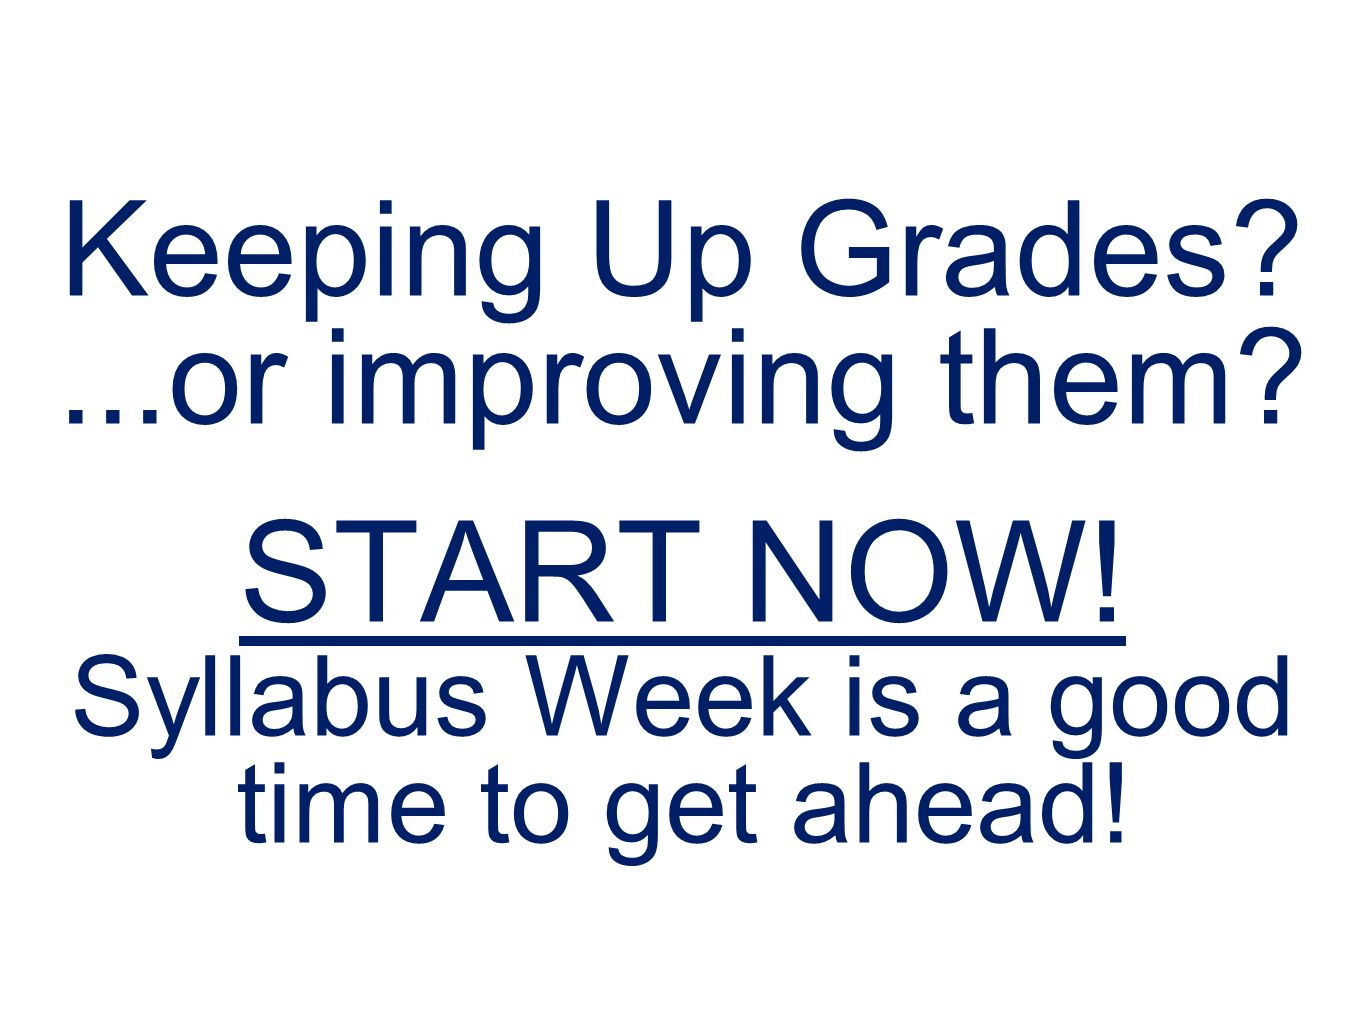 Keeping Up Grades ...or improving them START NOW! Syllabus Week is a good time to get ahead!